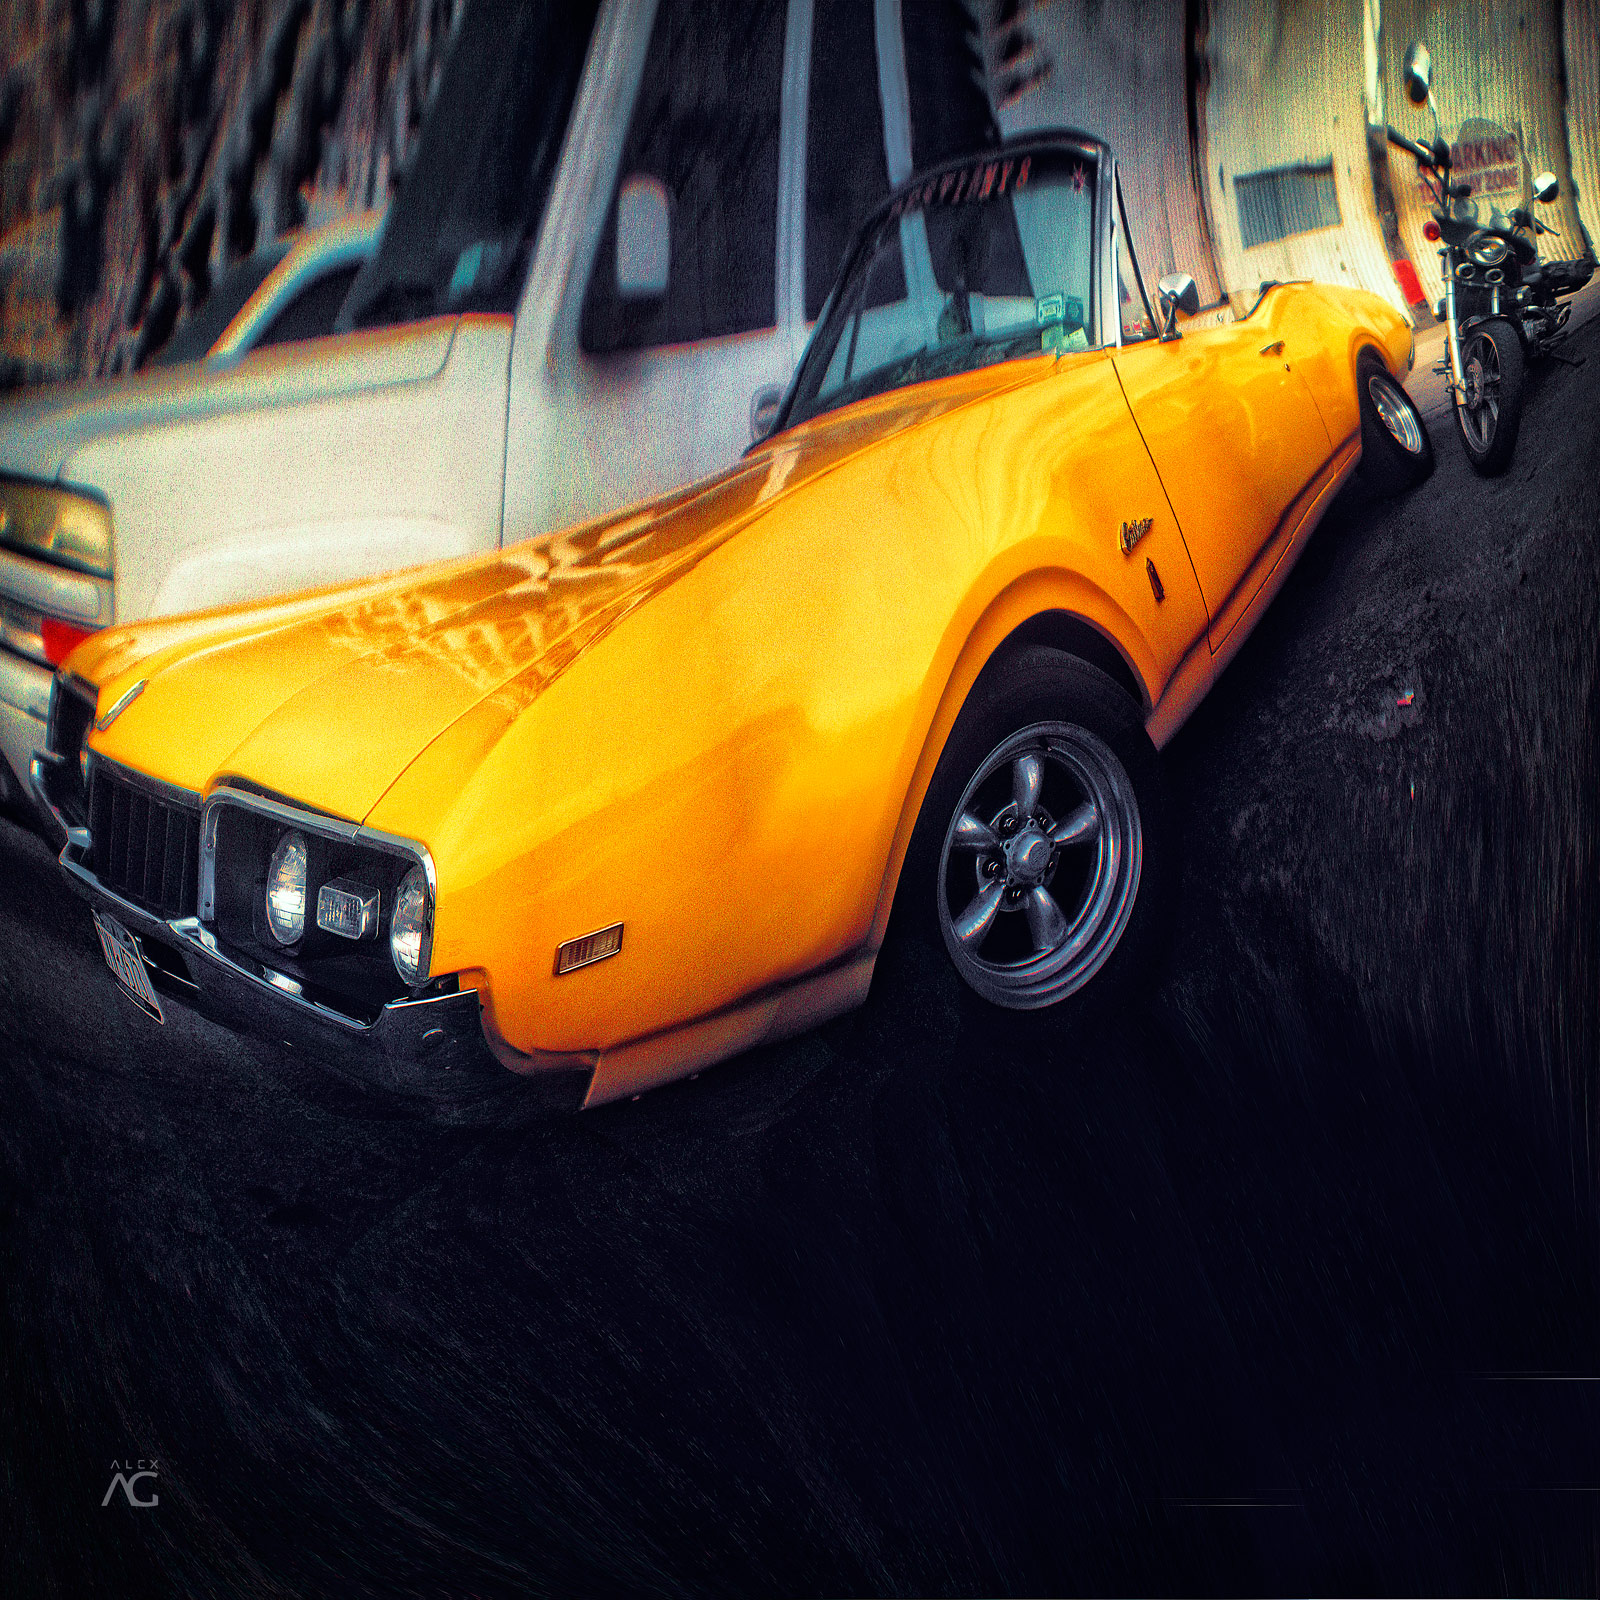 YellowMustangFrom60sOnConeyIsland_Romanika_warped_1600